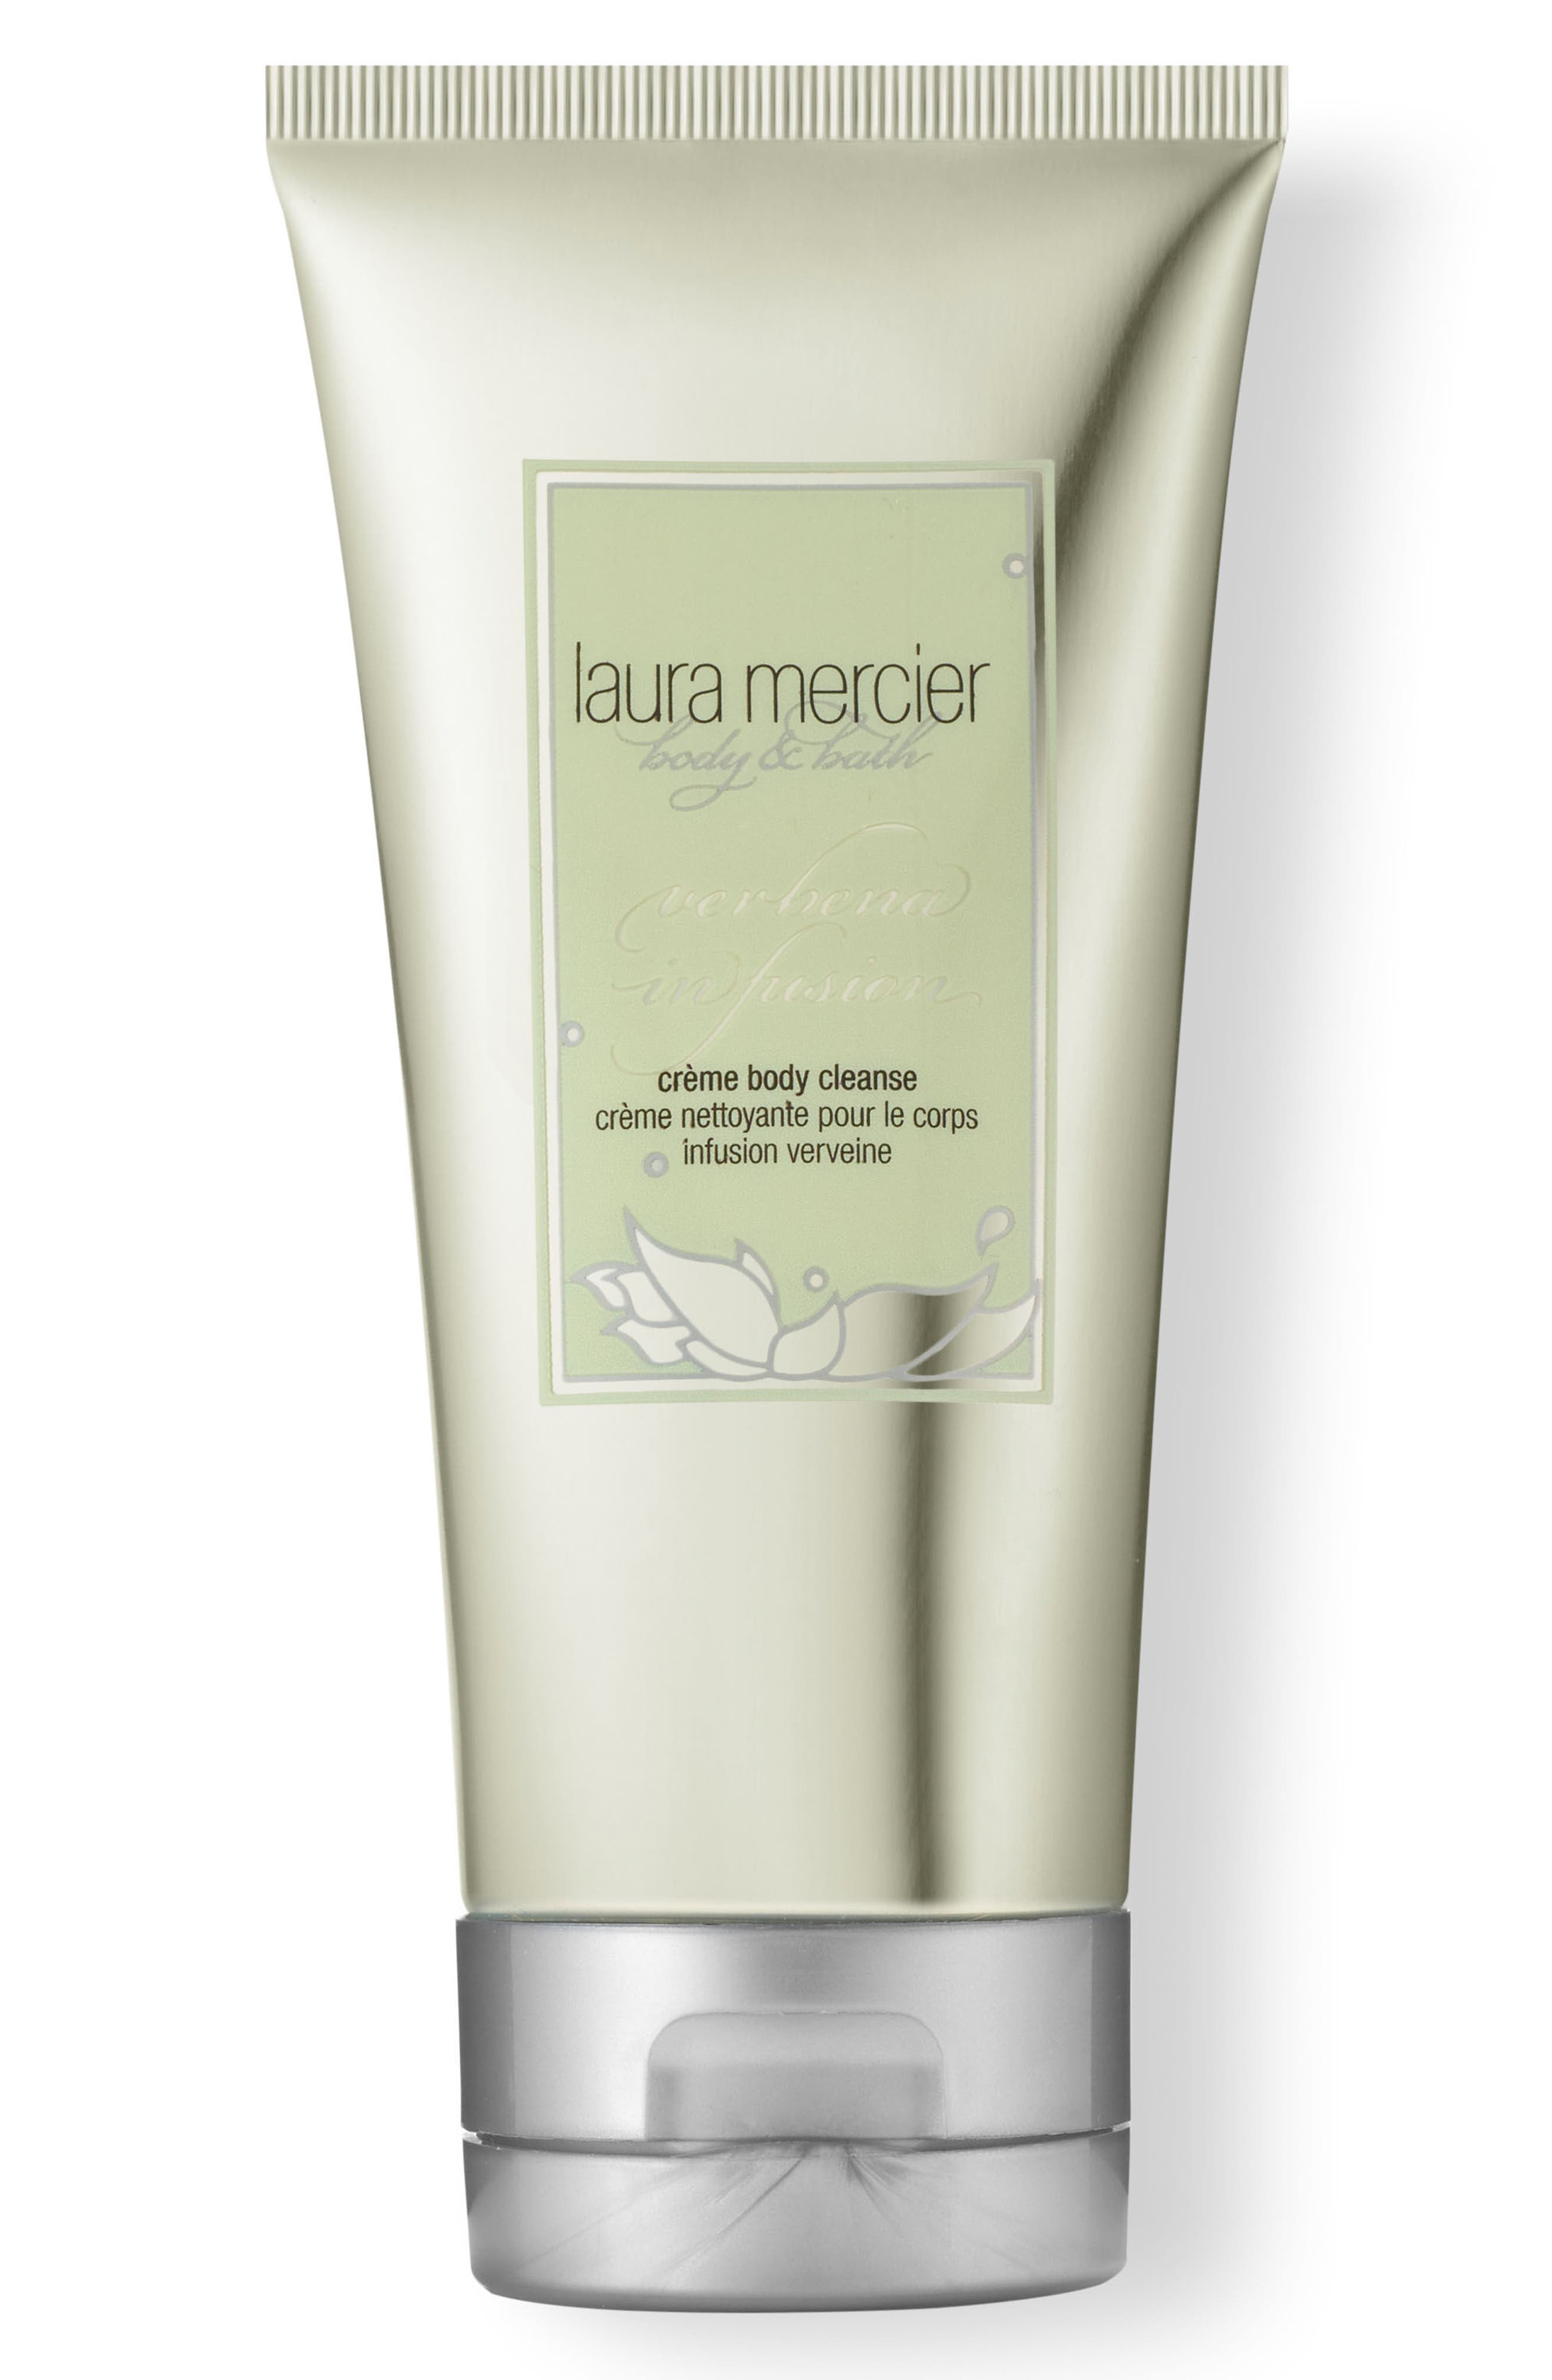 Main Image - Laura Mercier 'Verbena Infusion' Creme Body Cleanse